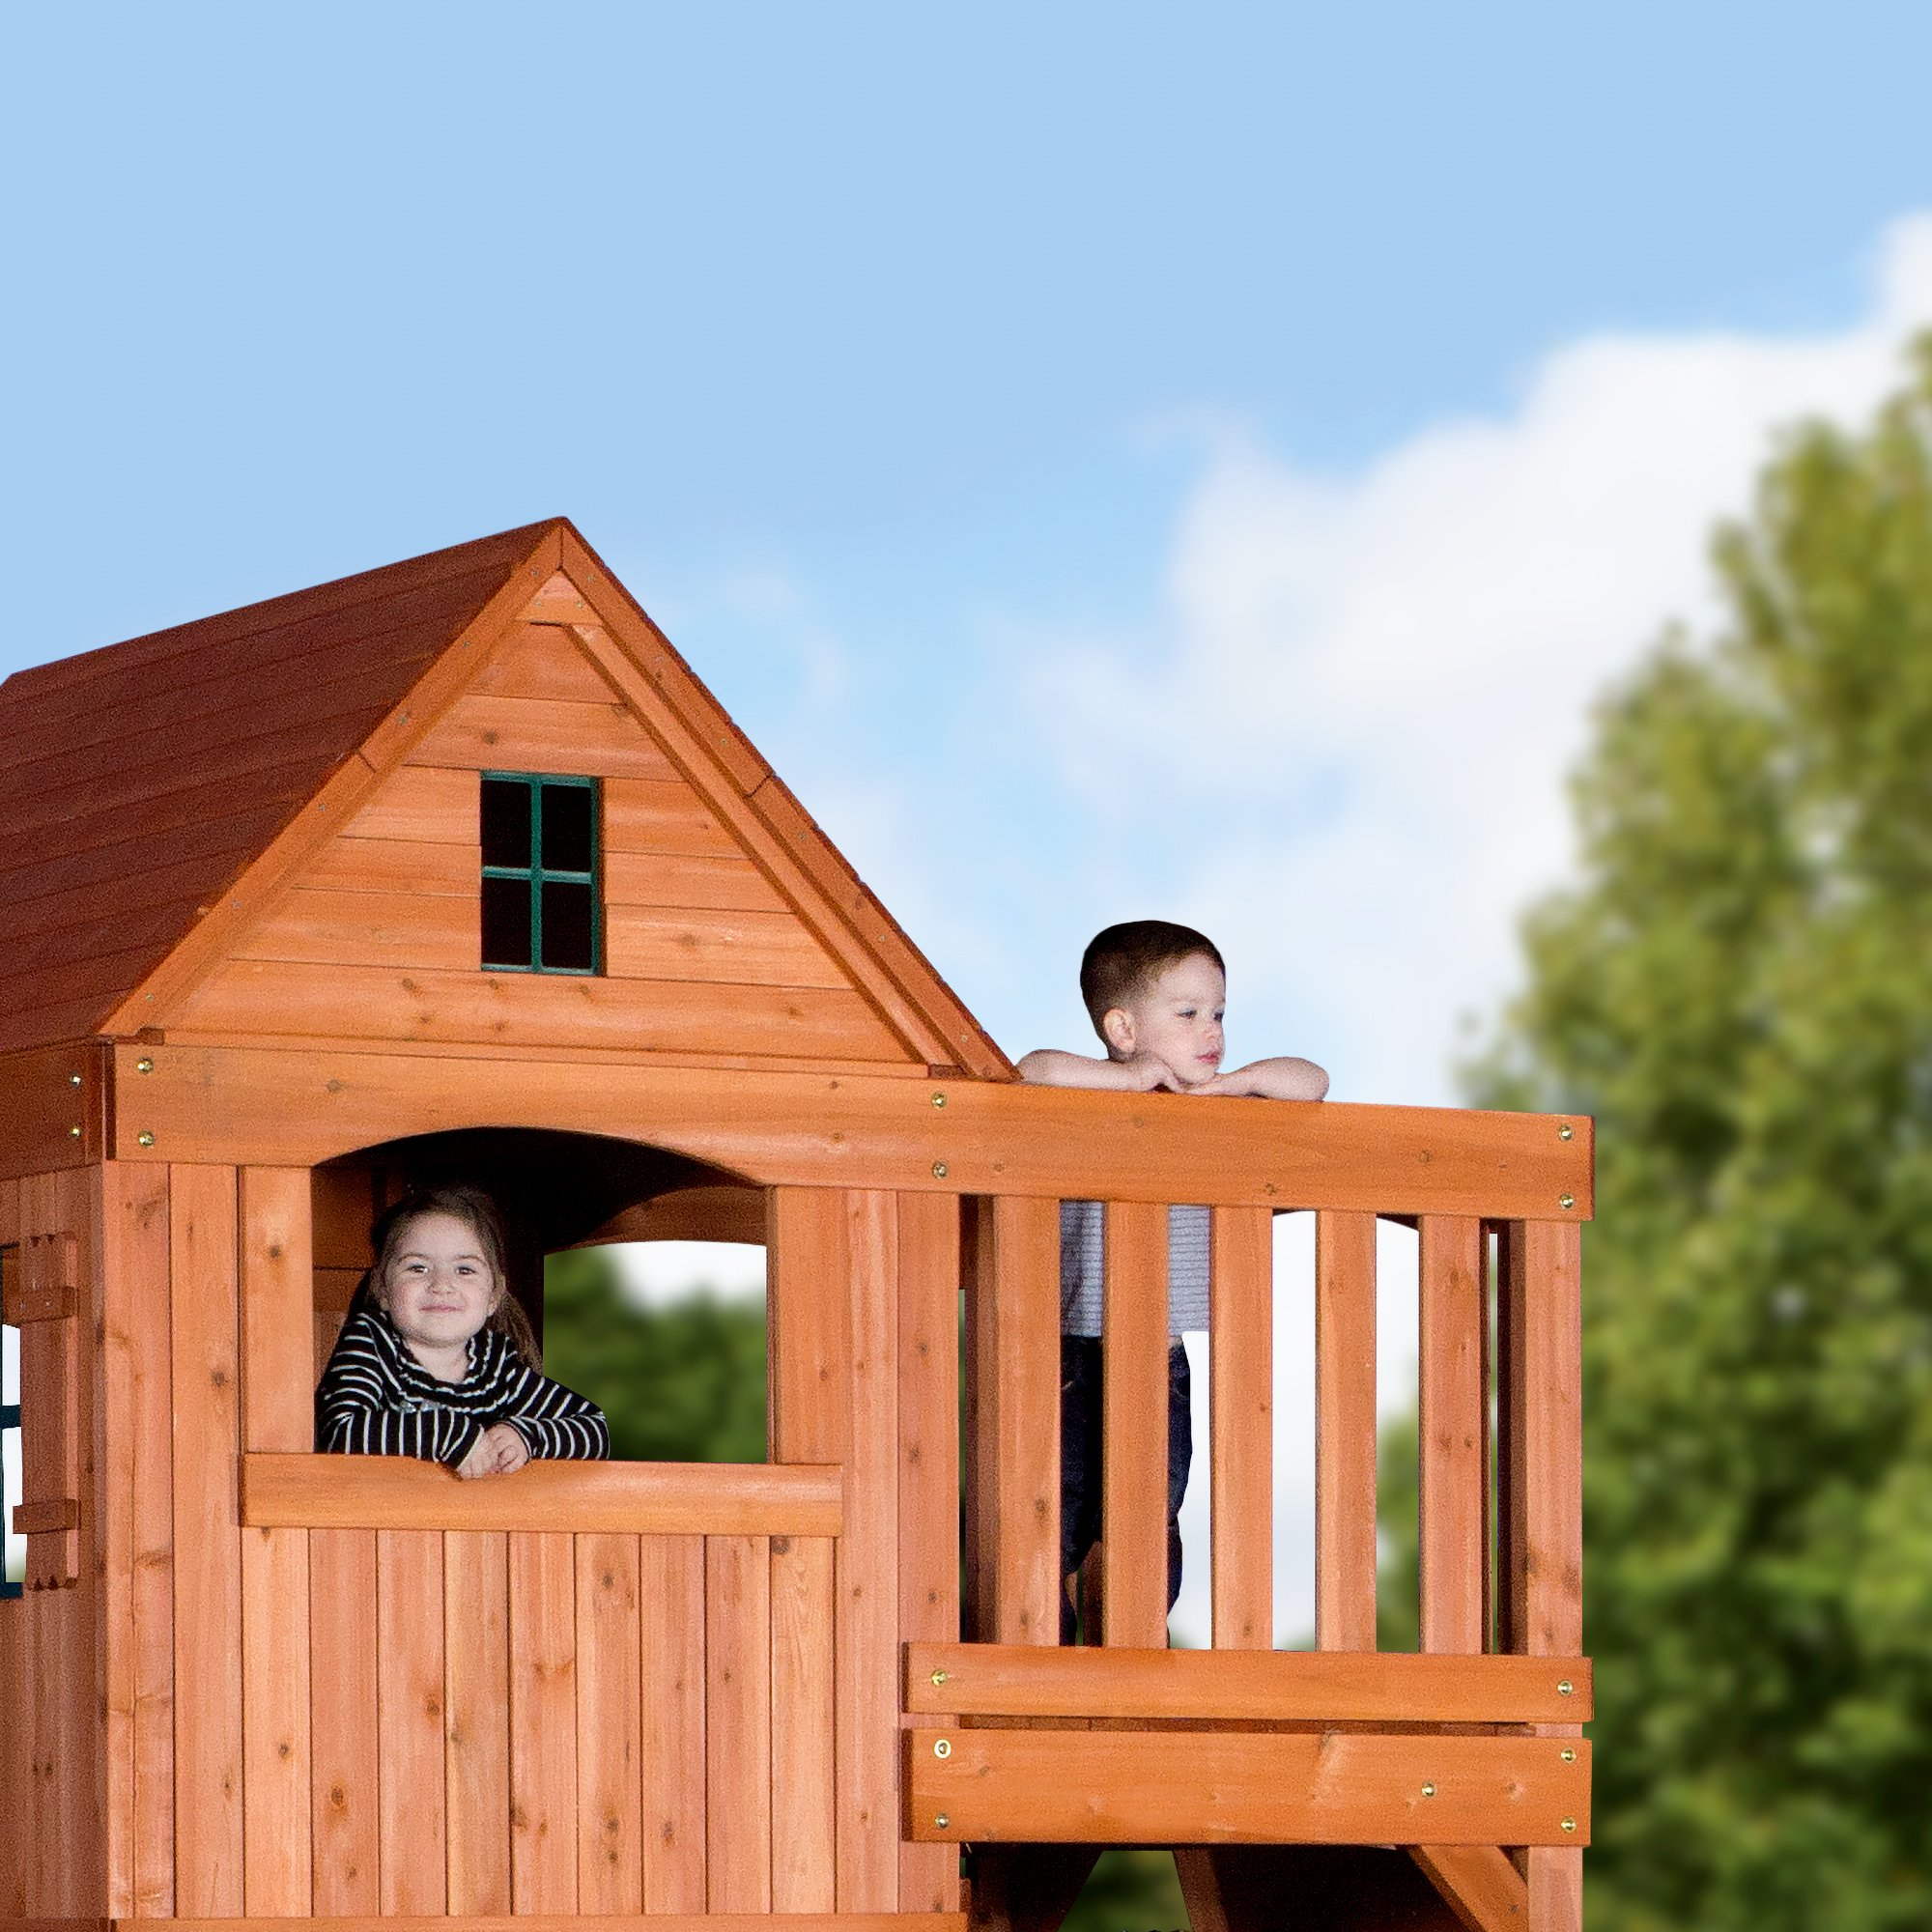 Backyard Discovery Pacific View All Cedar Wood Playset Swing Set by Backyard Discovery (Image #5)